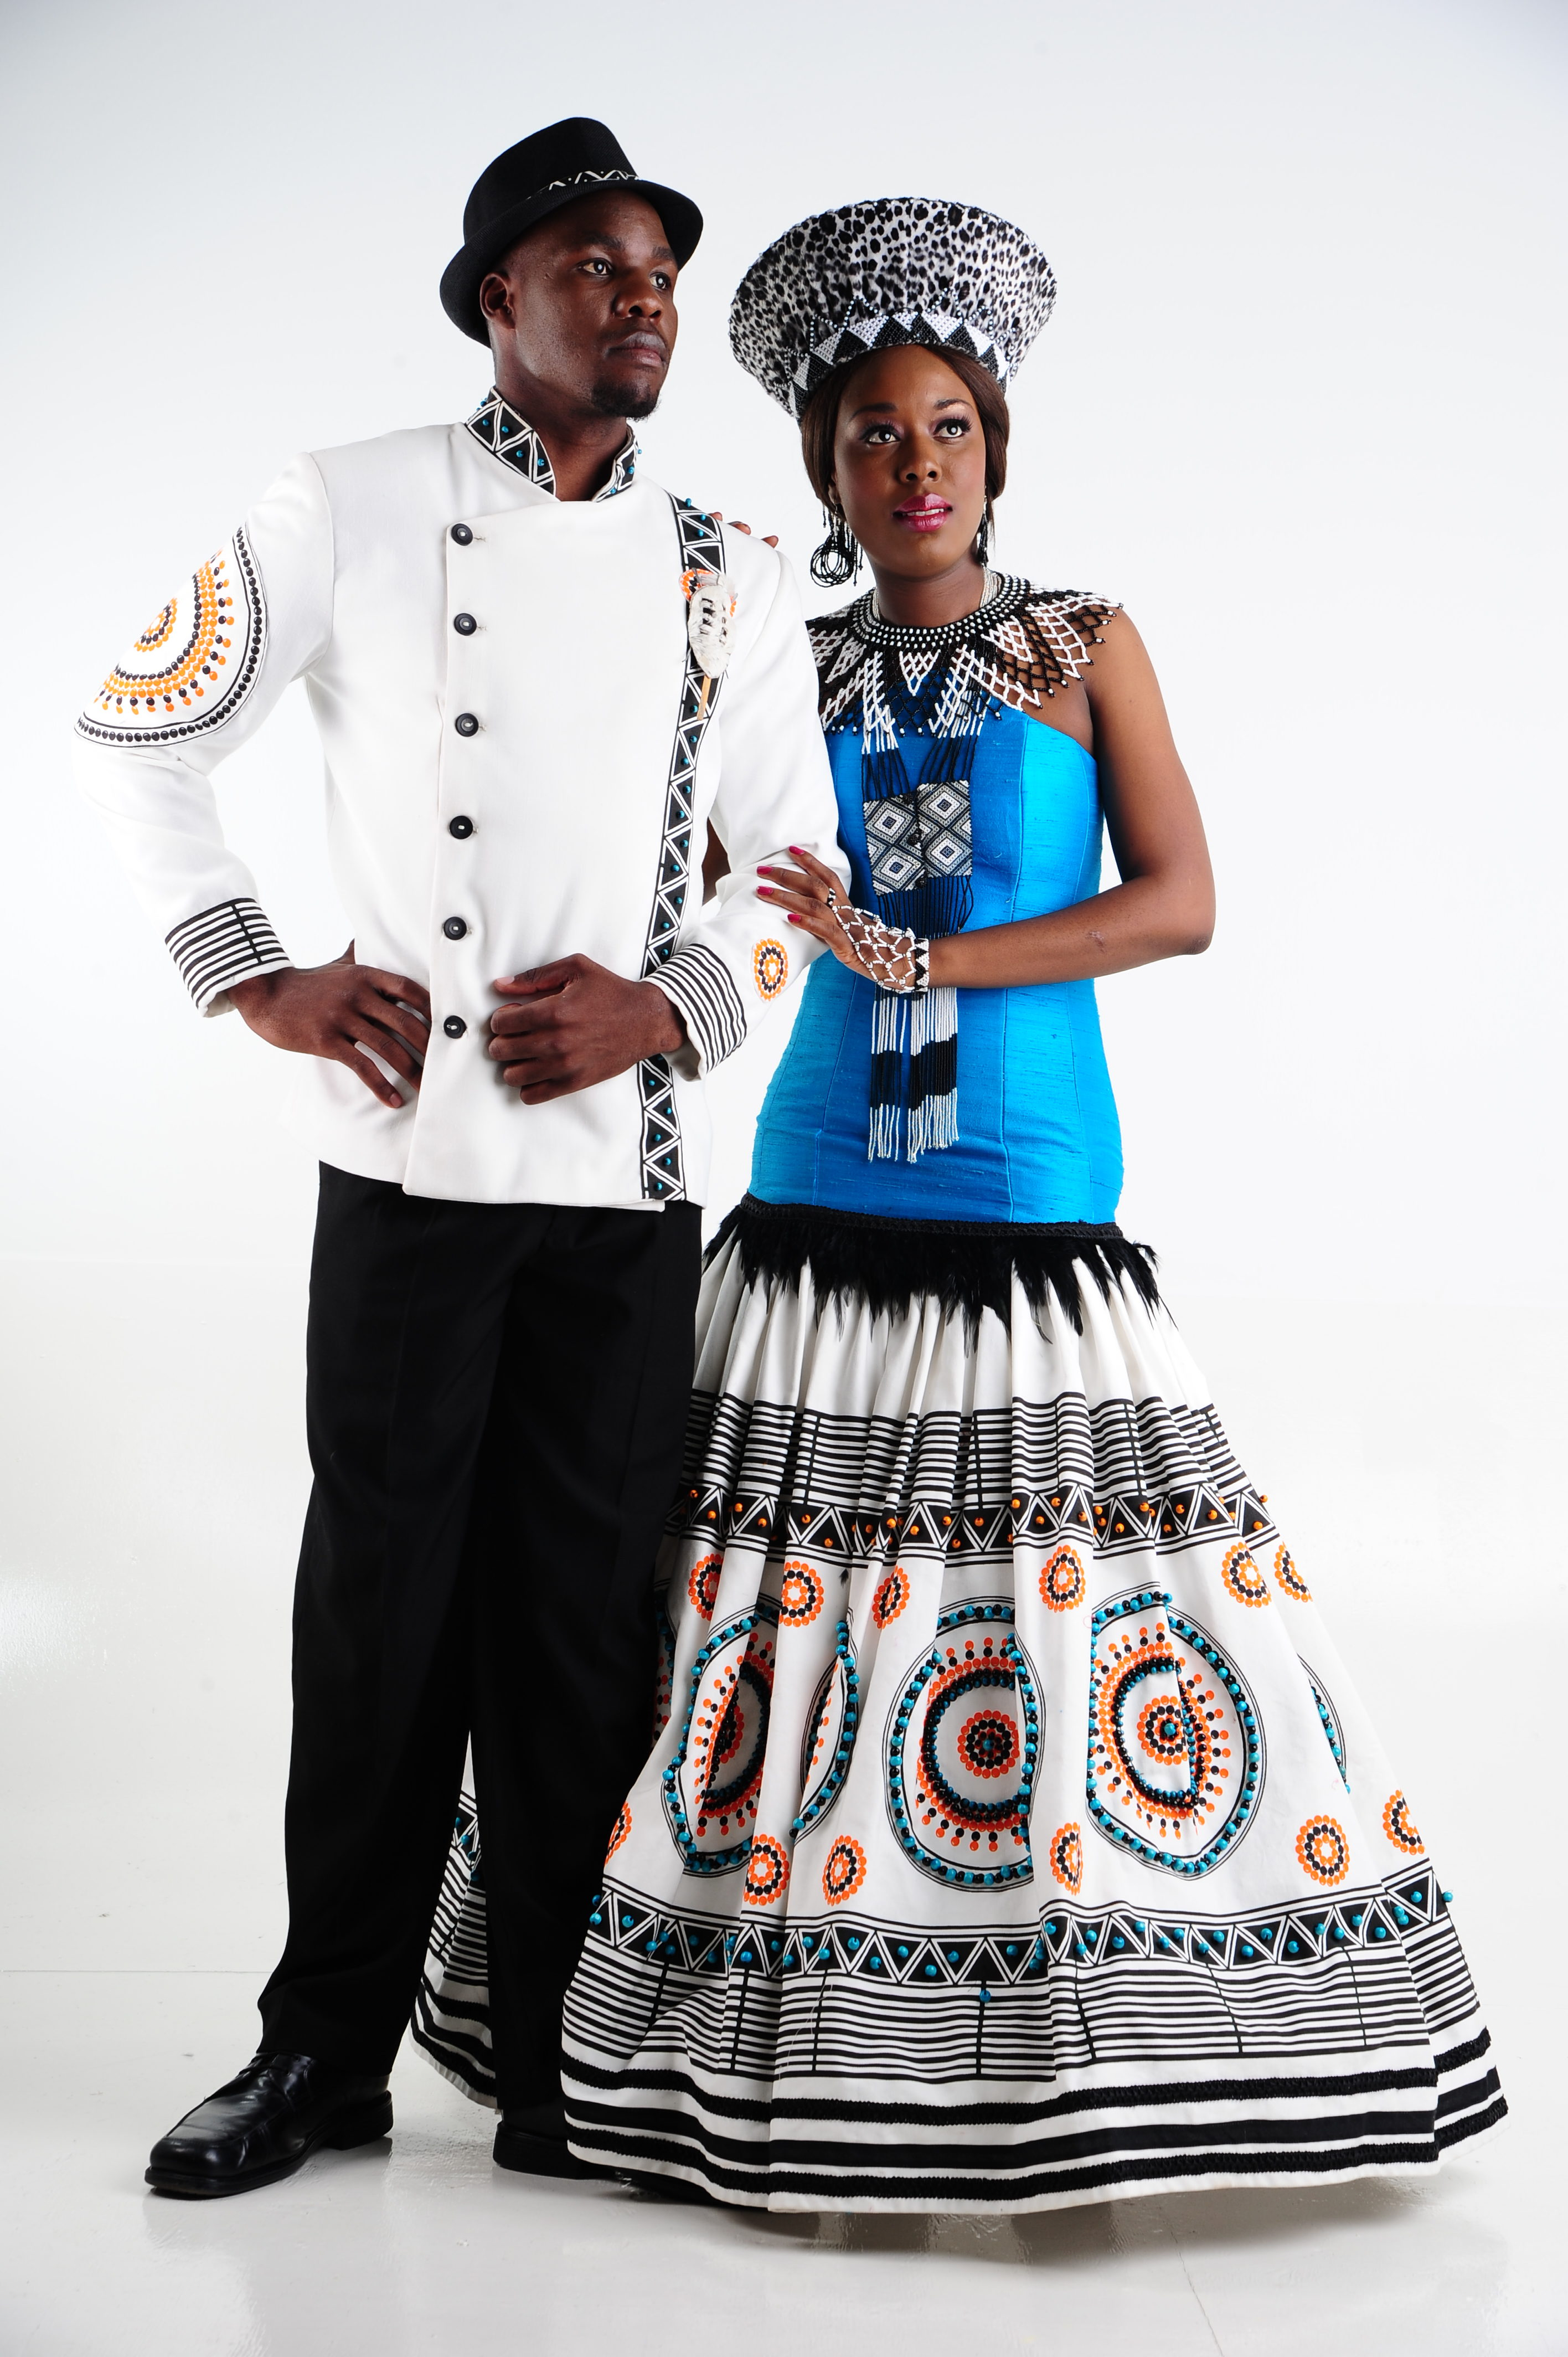 Tswana traditional dress designs 2017 styles 7 - Xhosa Inspired Dress With Traditional Xhosa Beads And Matching Jacket